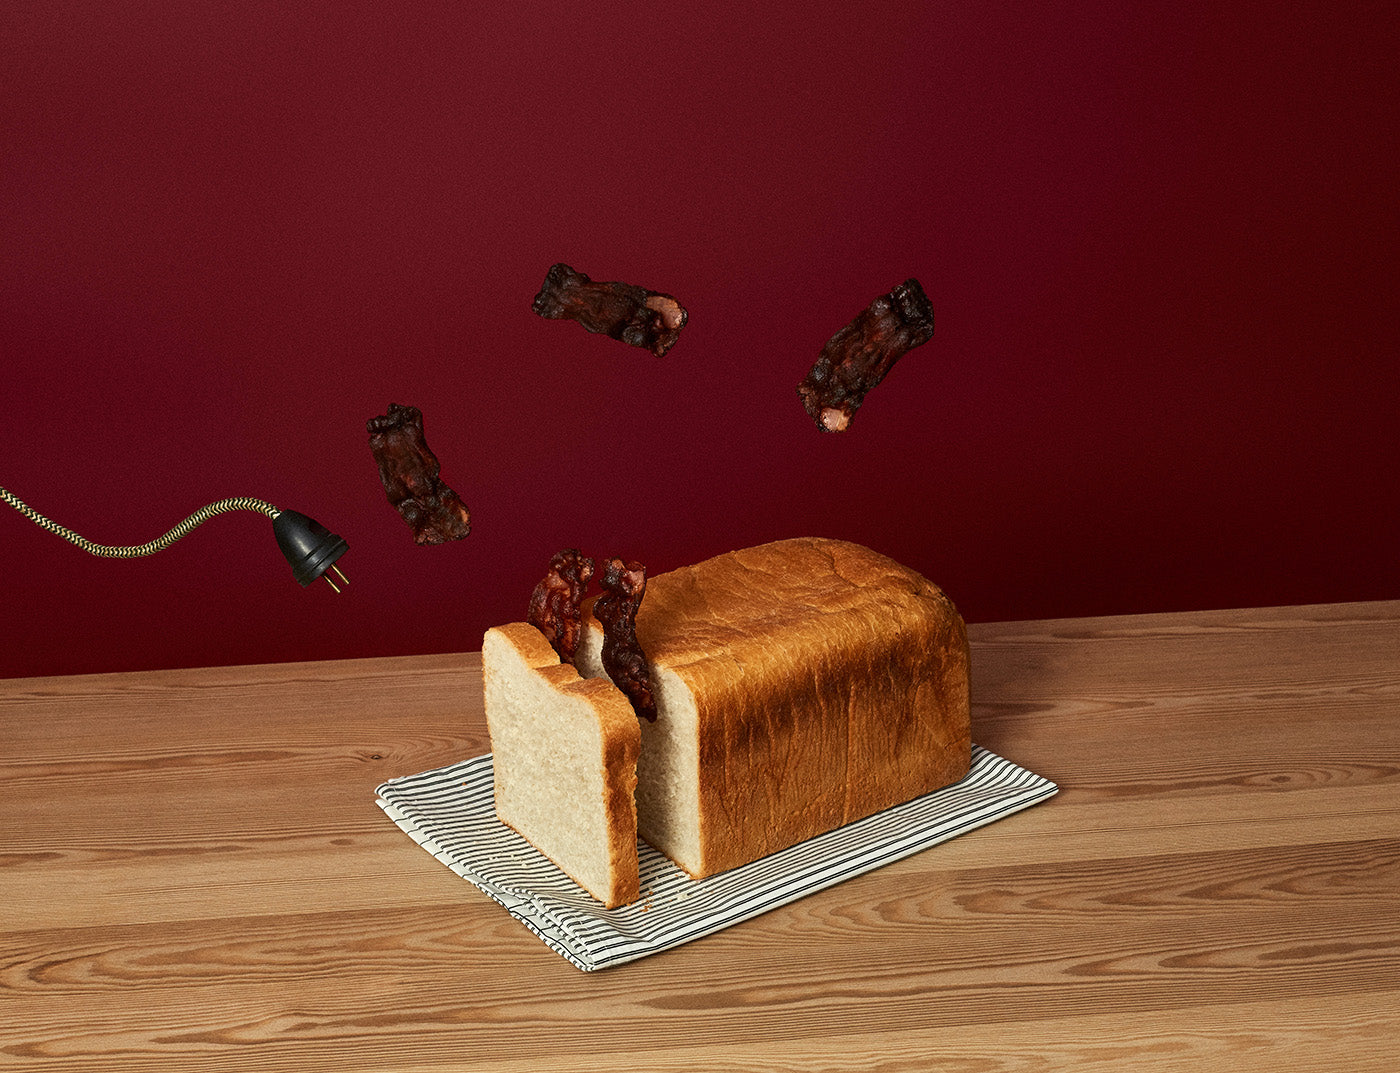 Surreal and absurd bacon toast by Fragmento Universo